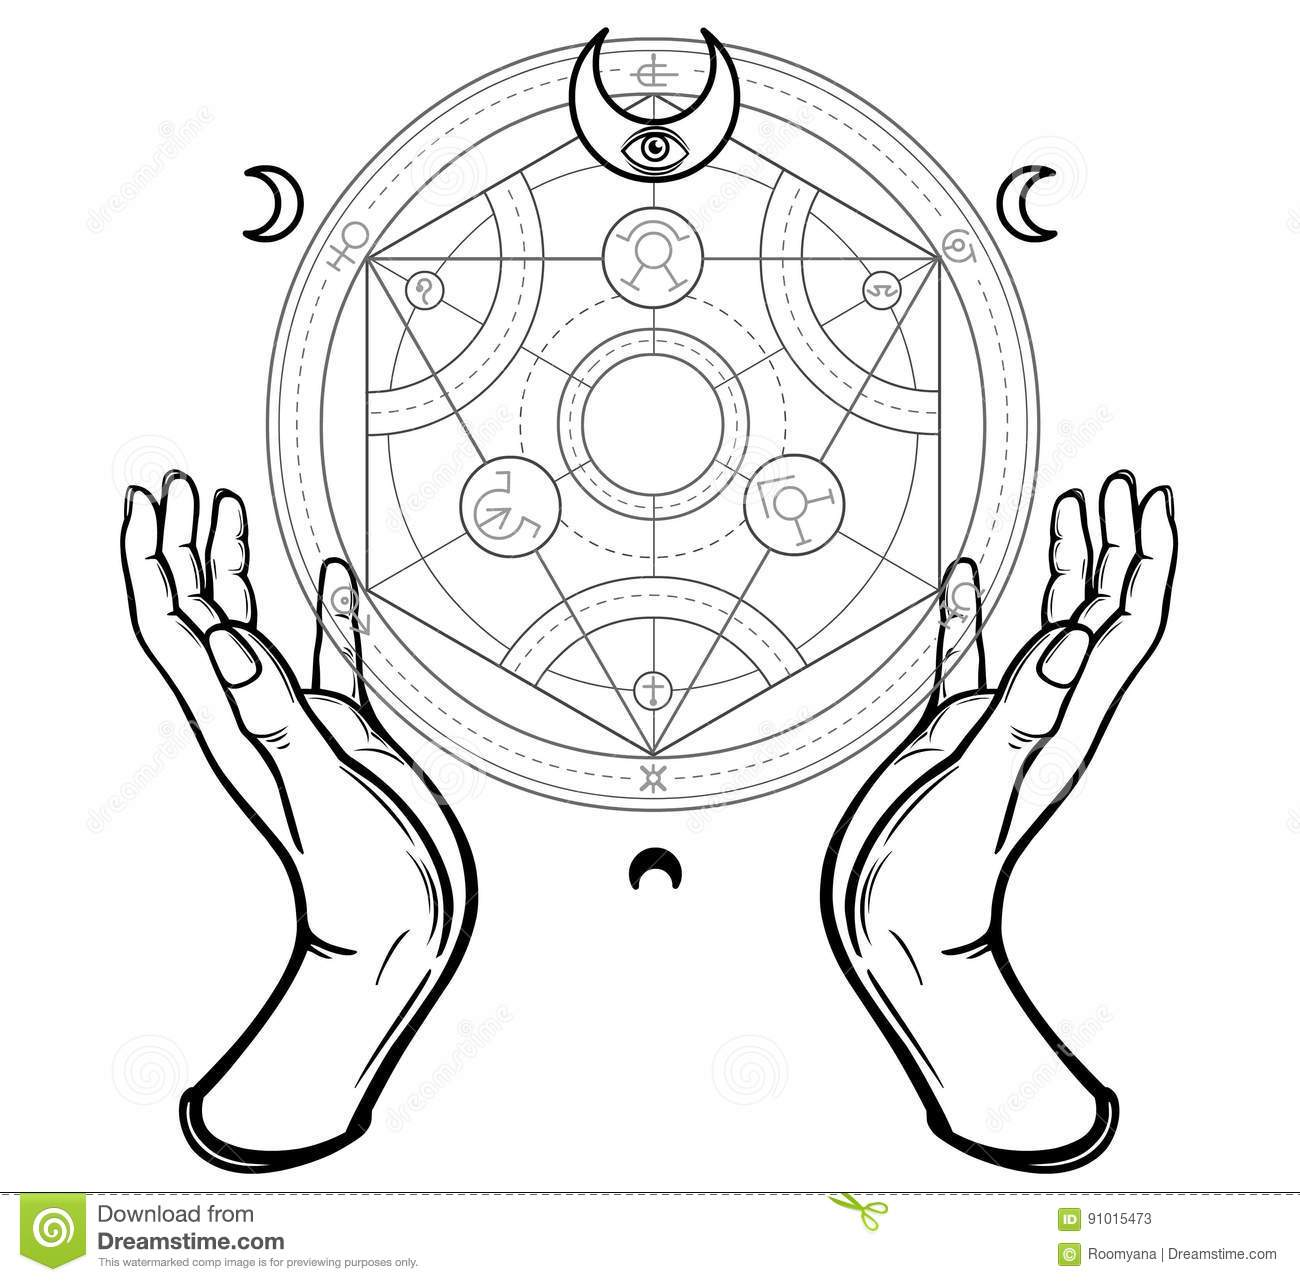 Human hands touch an alchemical circle. Mystical symbols, sacred geometry.